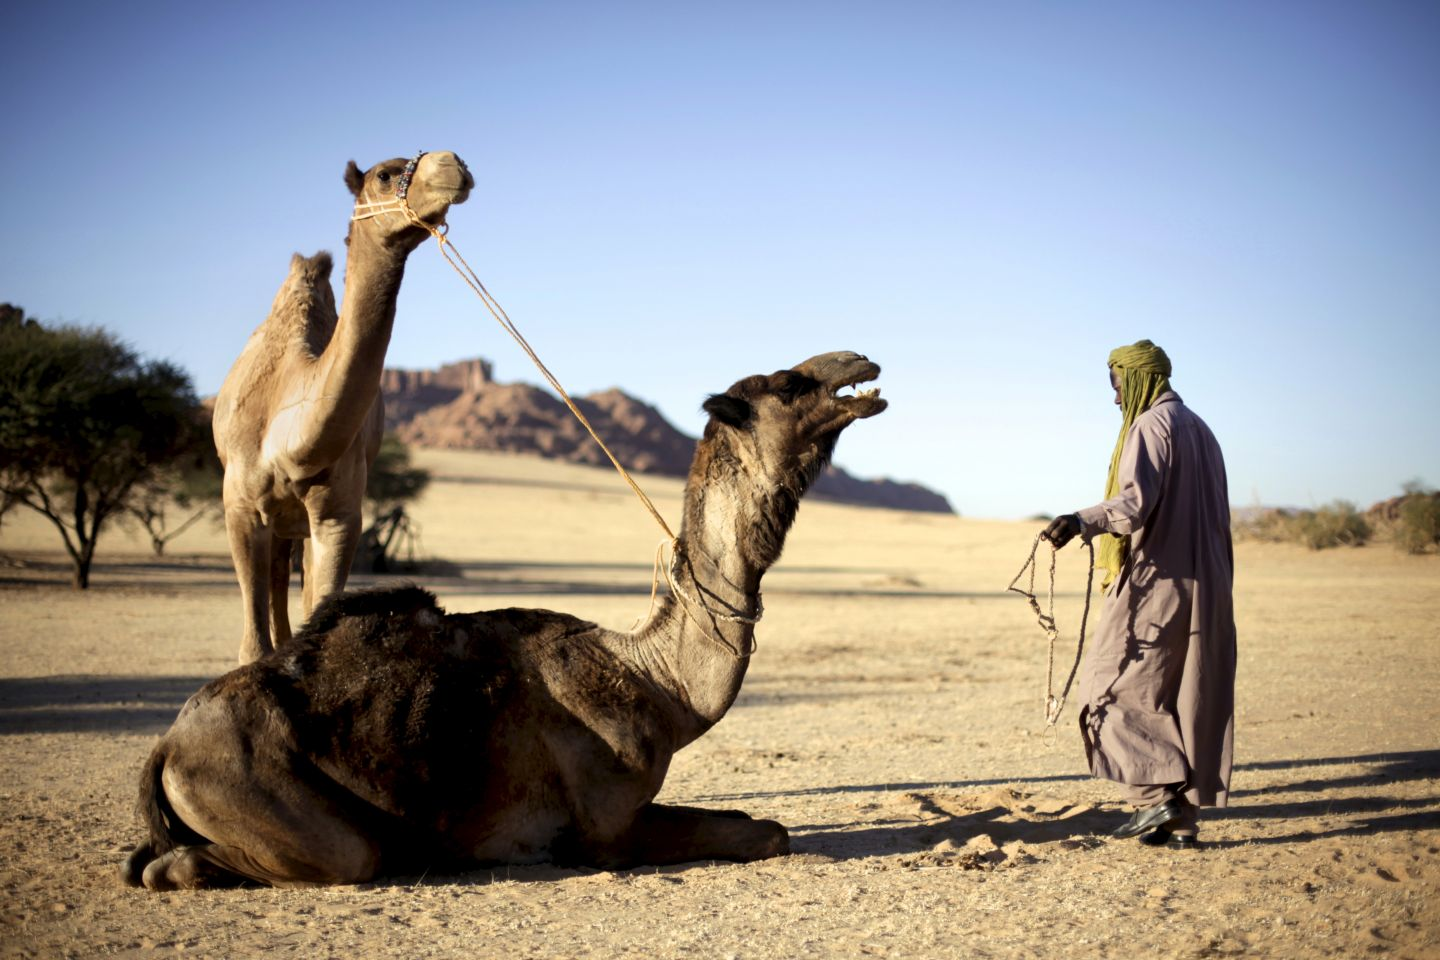 Chad: As deserts spread south, pastoralists face scarcity and drought